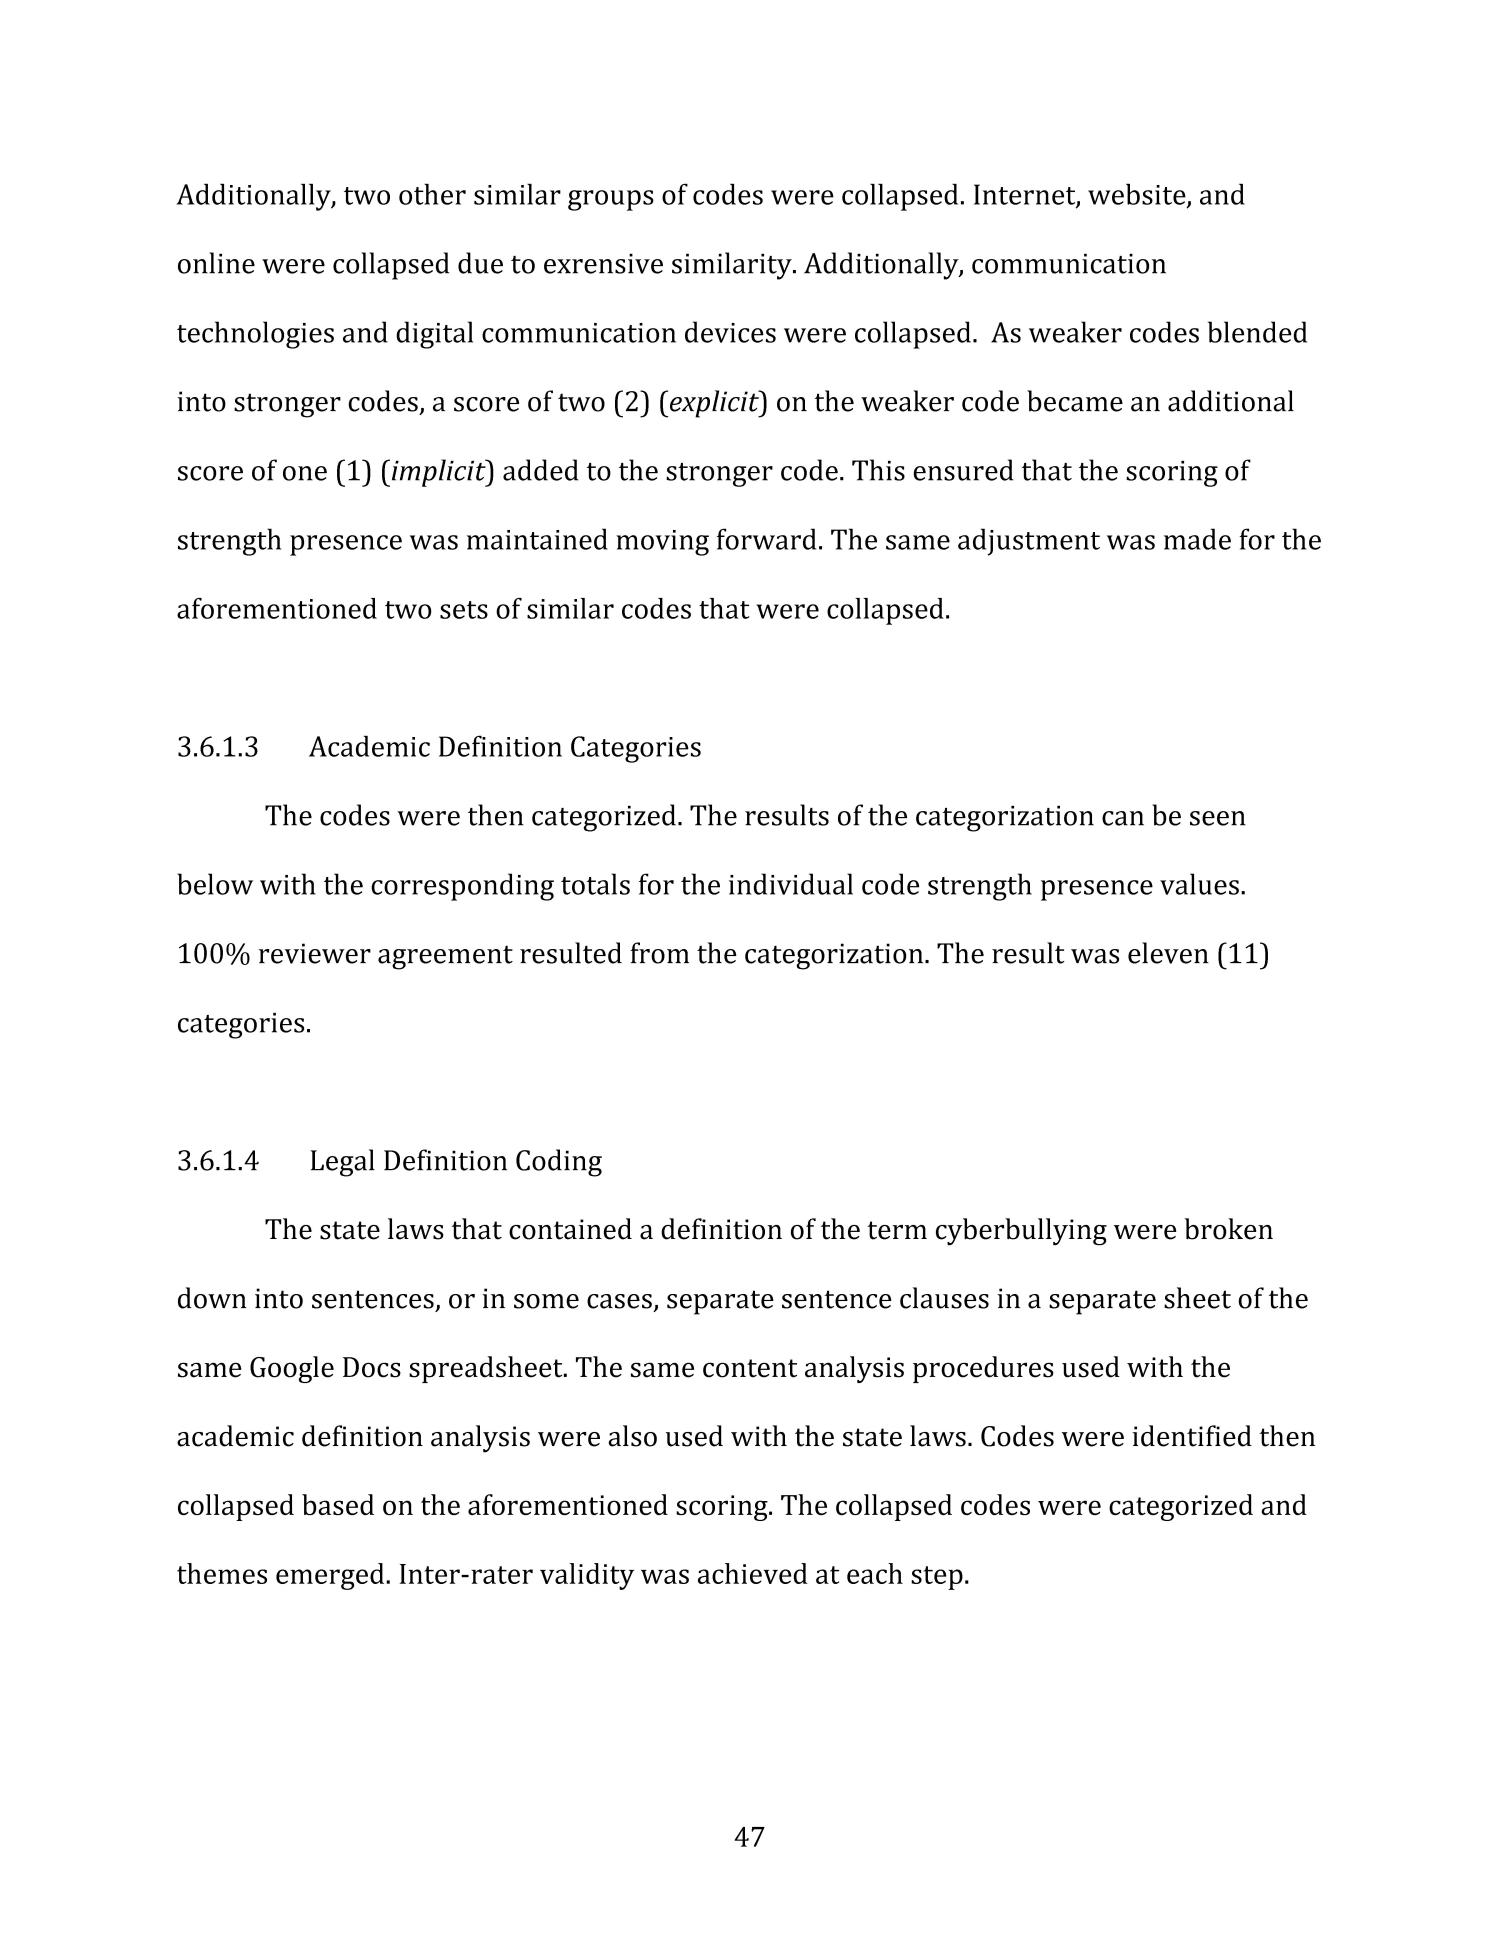 "Analyzing Patterns Within Academic and Legal Definitions: a Qualitative Content Analysis of the Term ""Cyberbullying""                                                                                                      47"